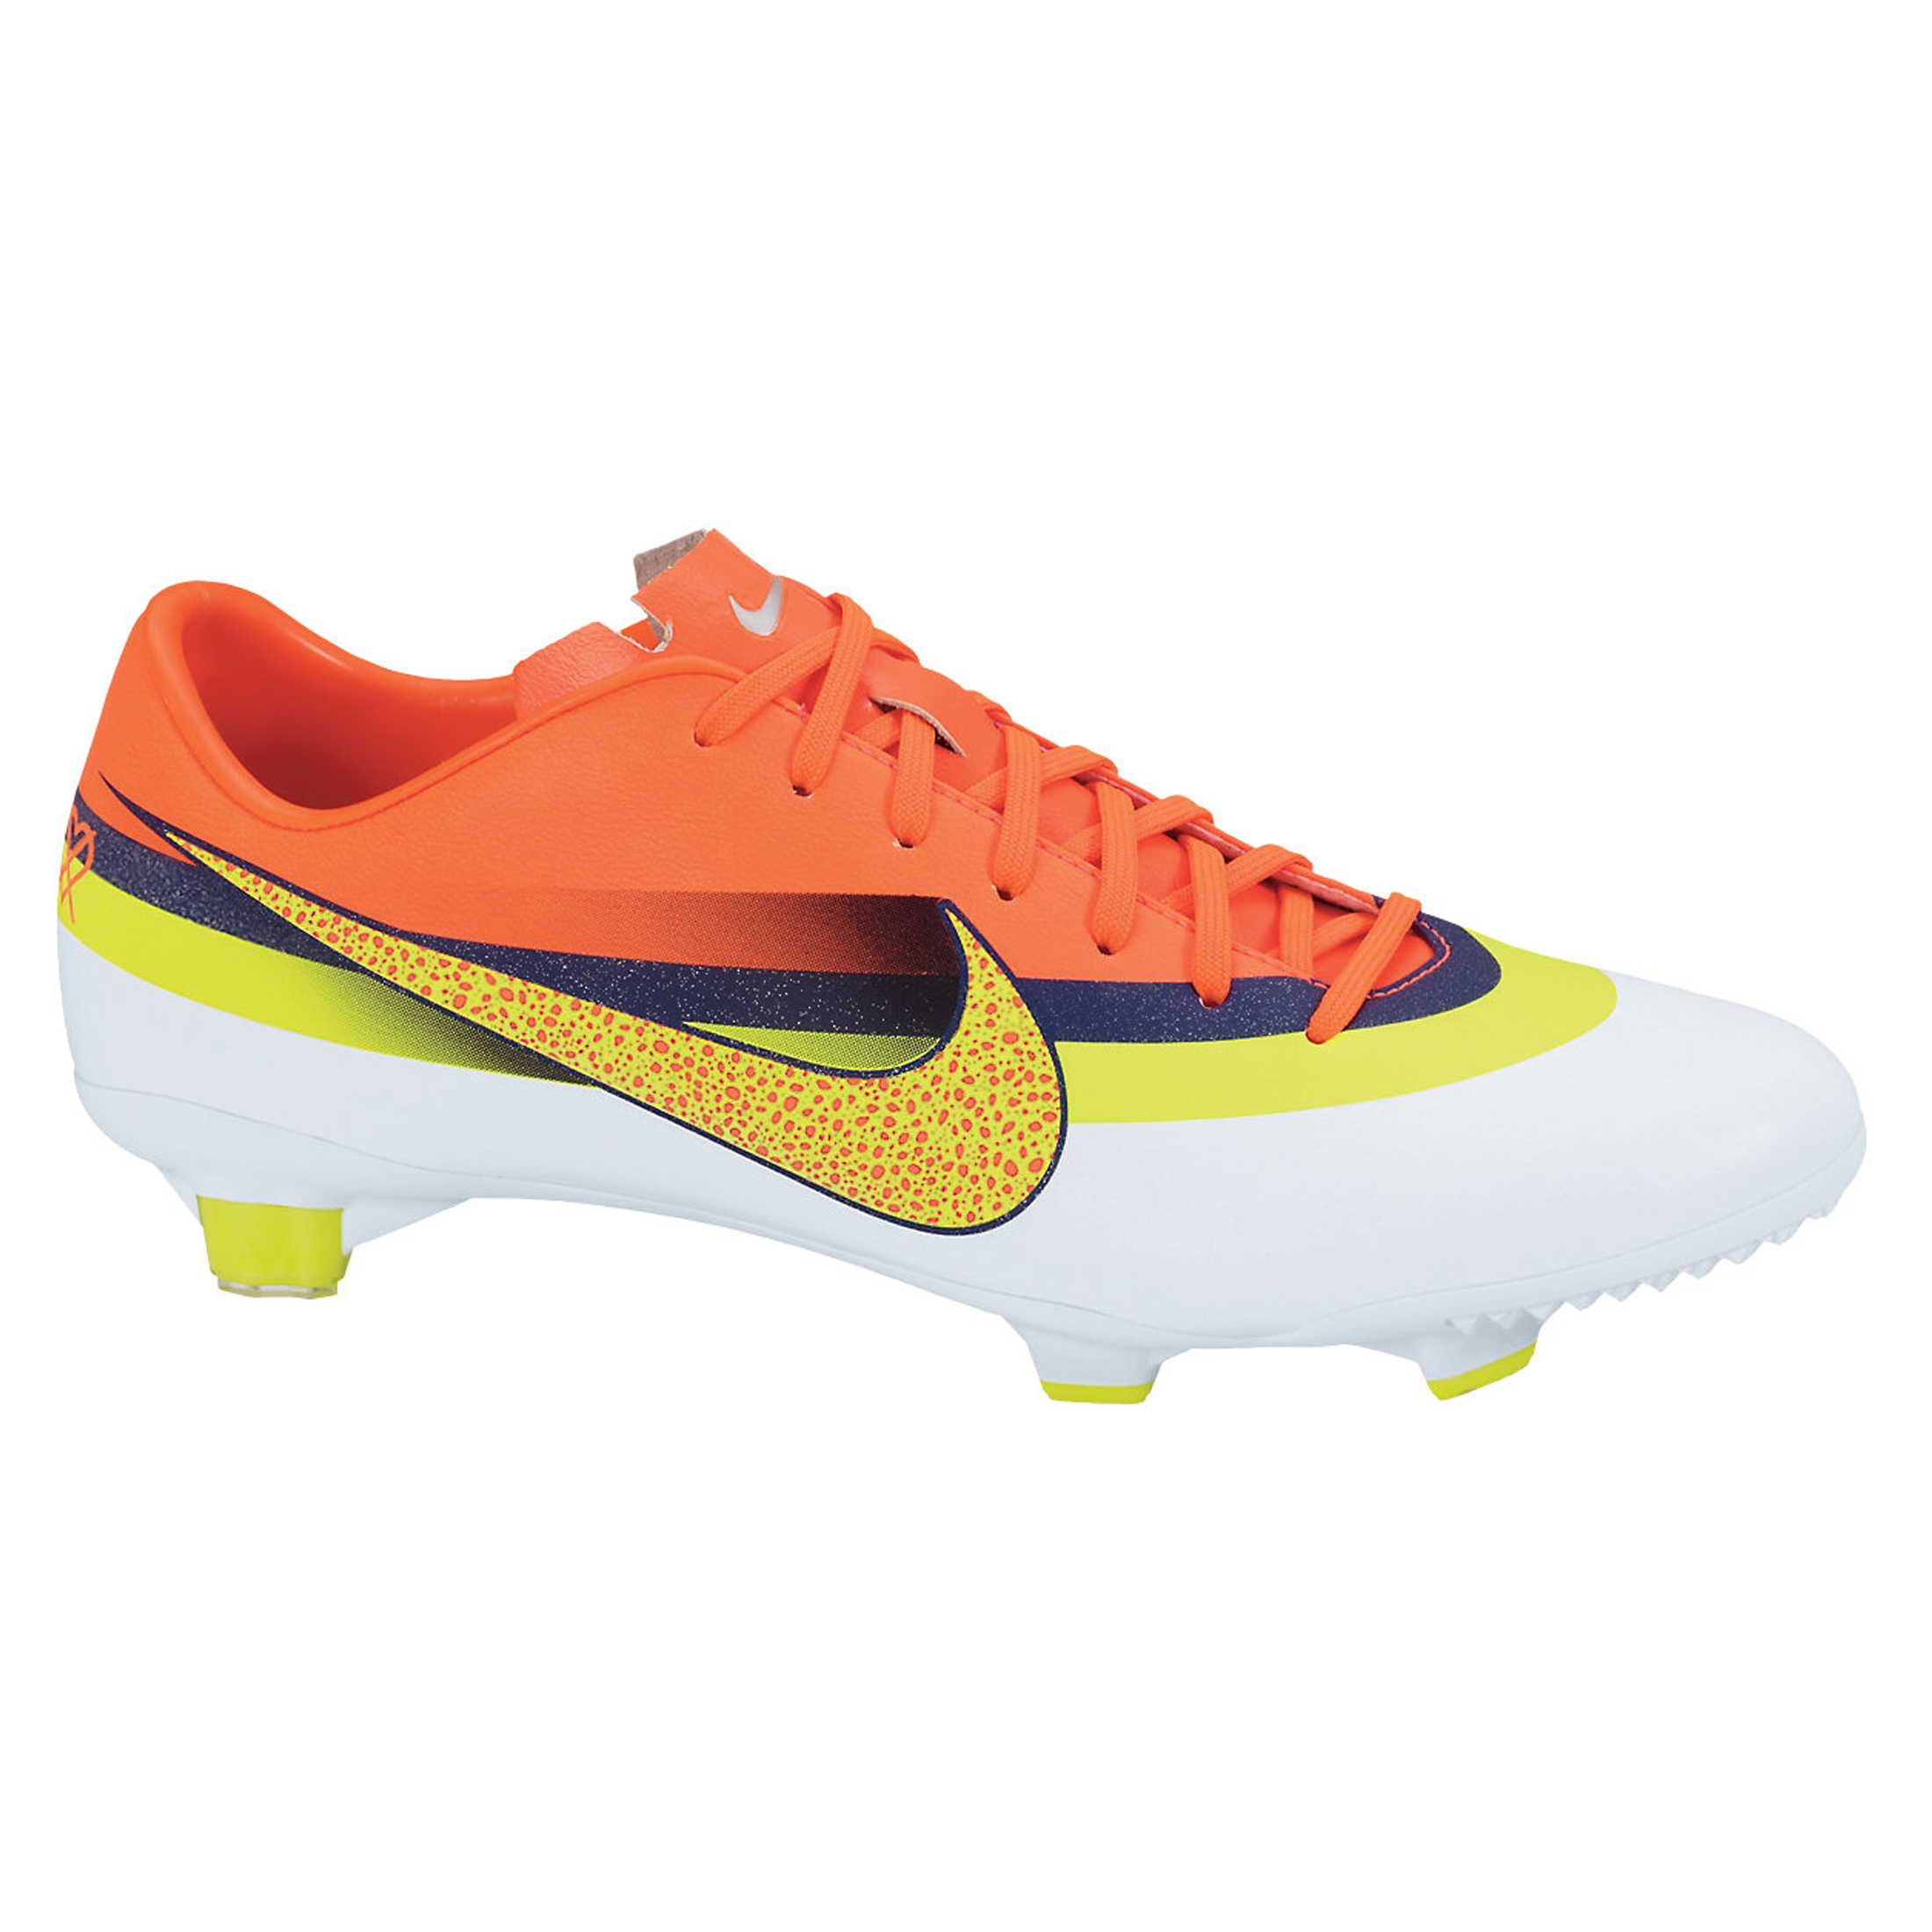 Mercurial Vapor IX CR7 FG White/Volt/Loyal Blue/Total Crimson